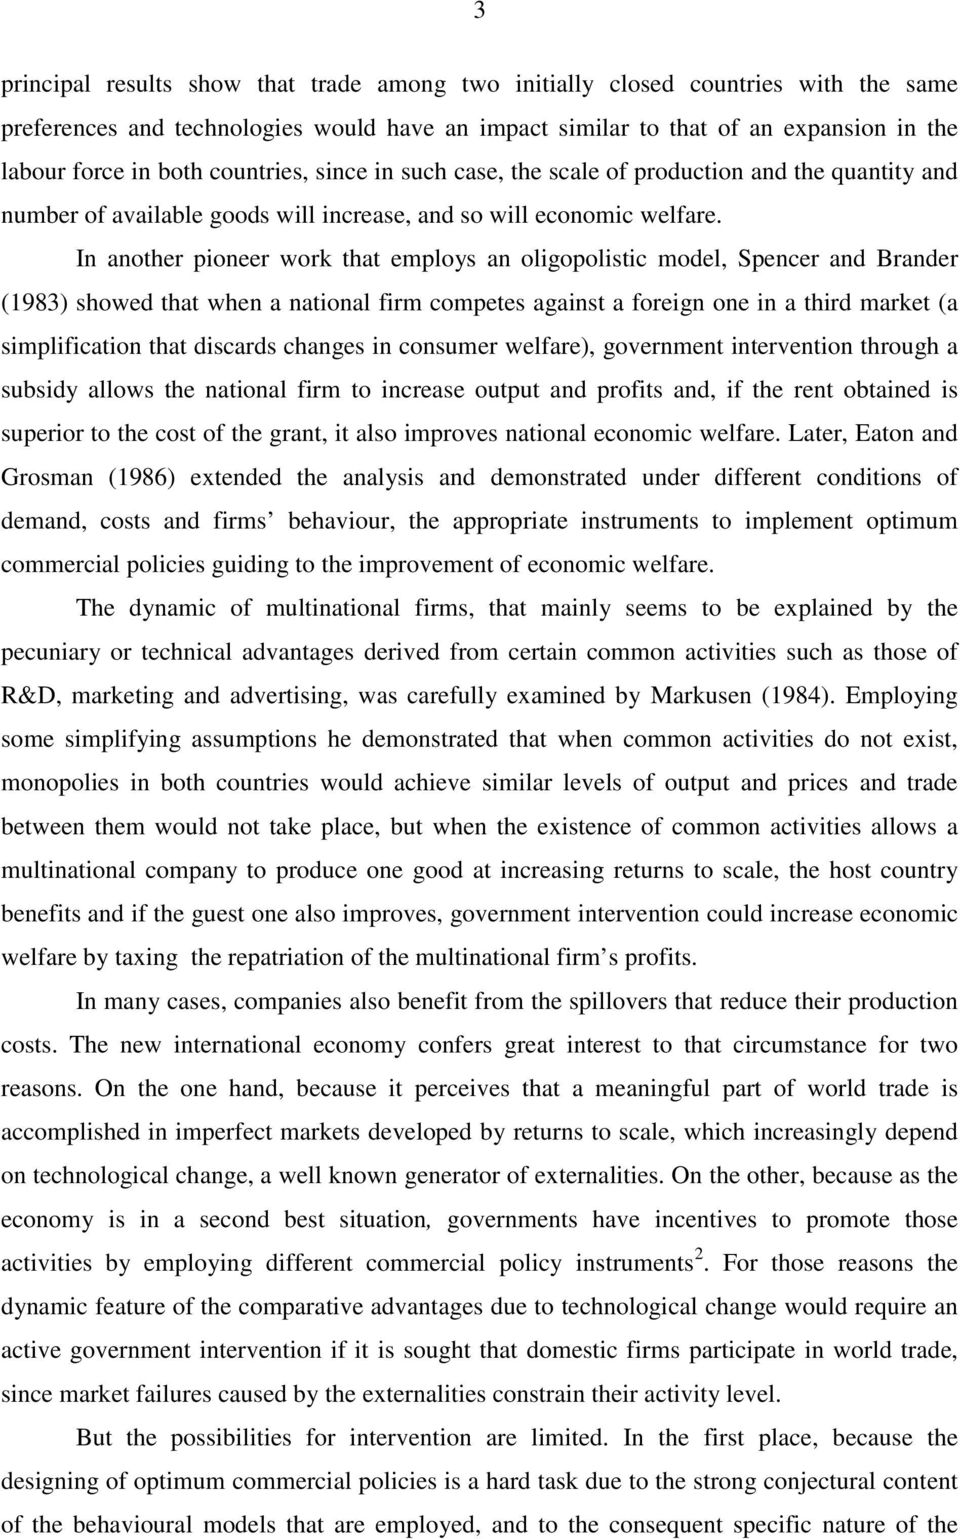 In another pioneer work that employs an oligopolistic model, Spencer and Brander (1983) showed that when a national firm competes against a foreign one in a third market (a simplification that